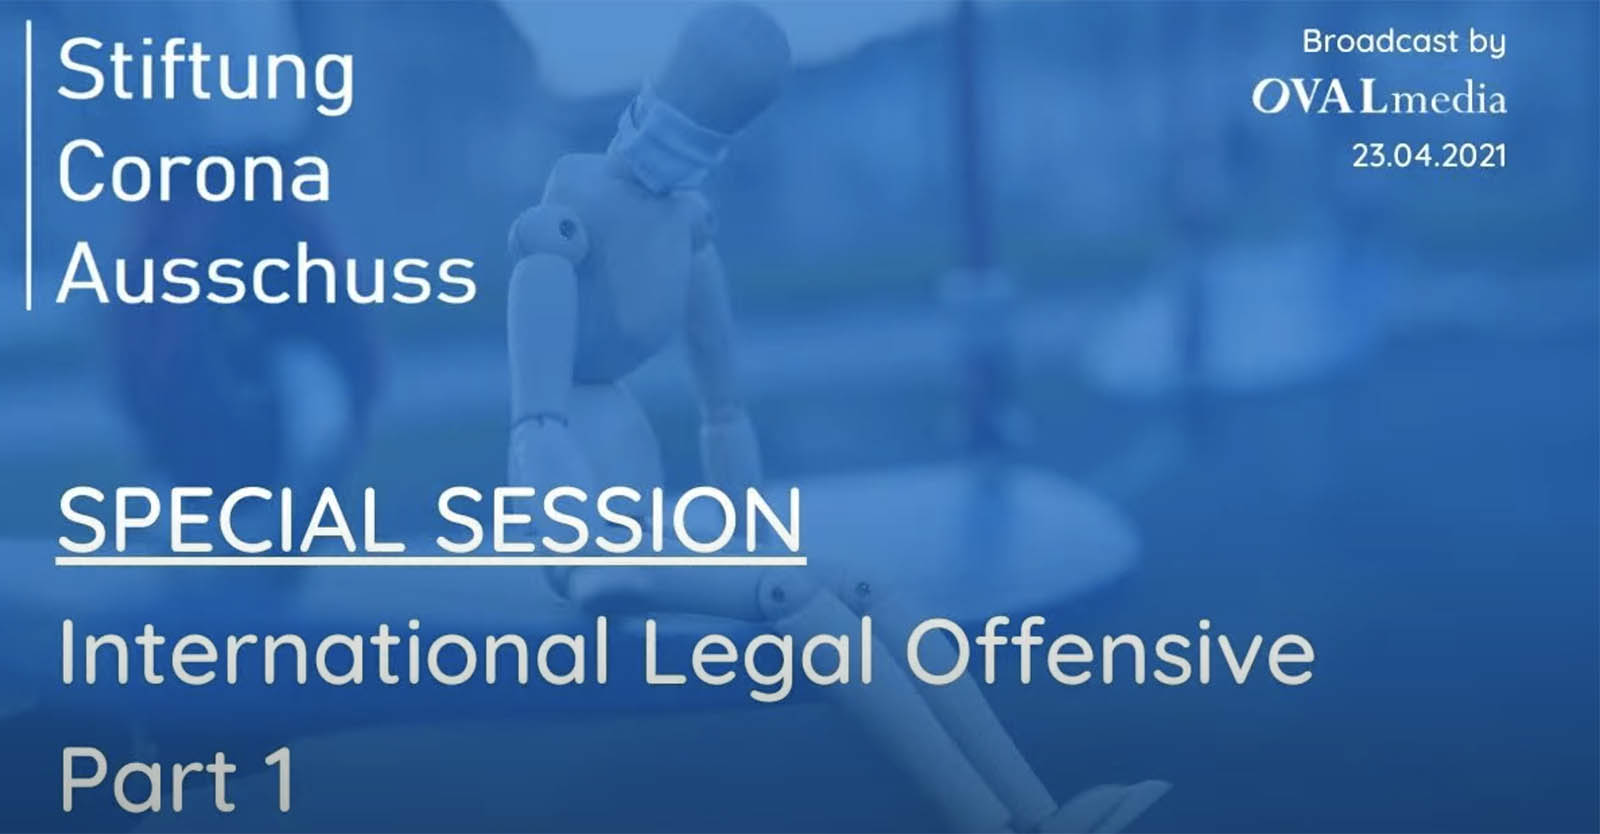 Stiftung Corona Ausschuss, Special Session: International Legal Offensive – Part 1